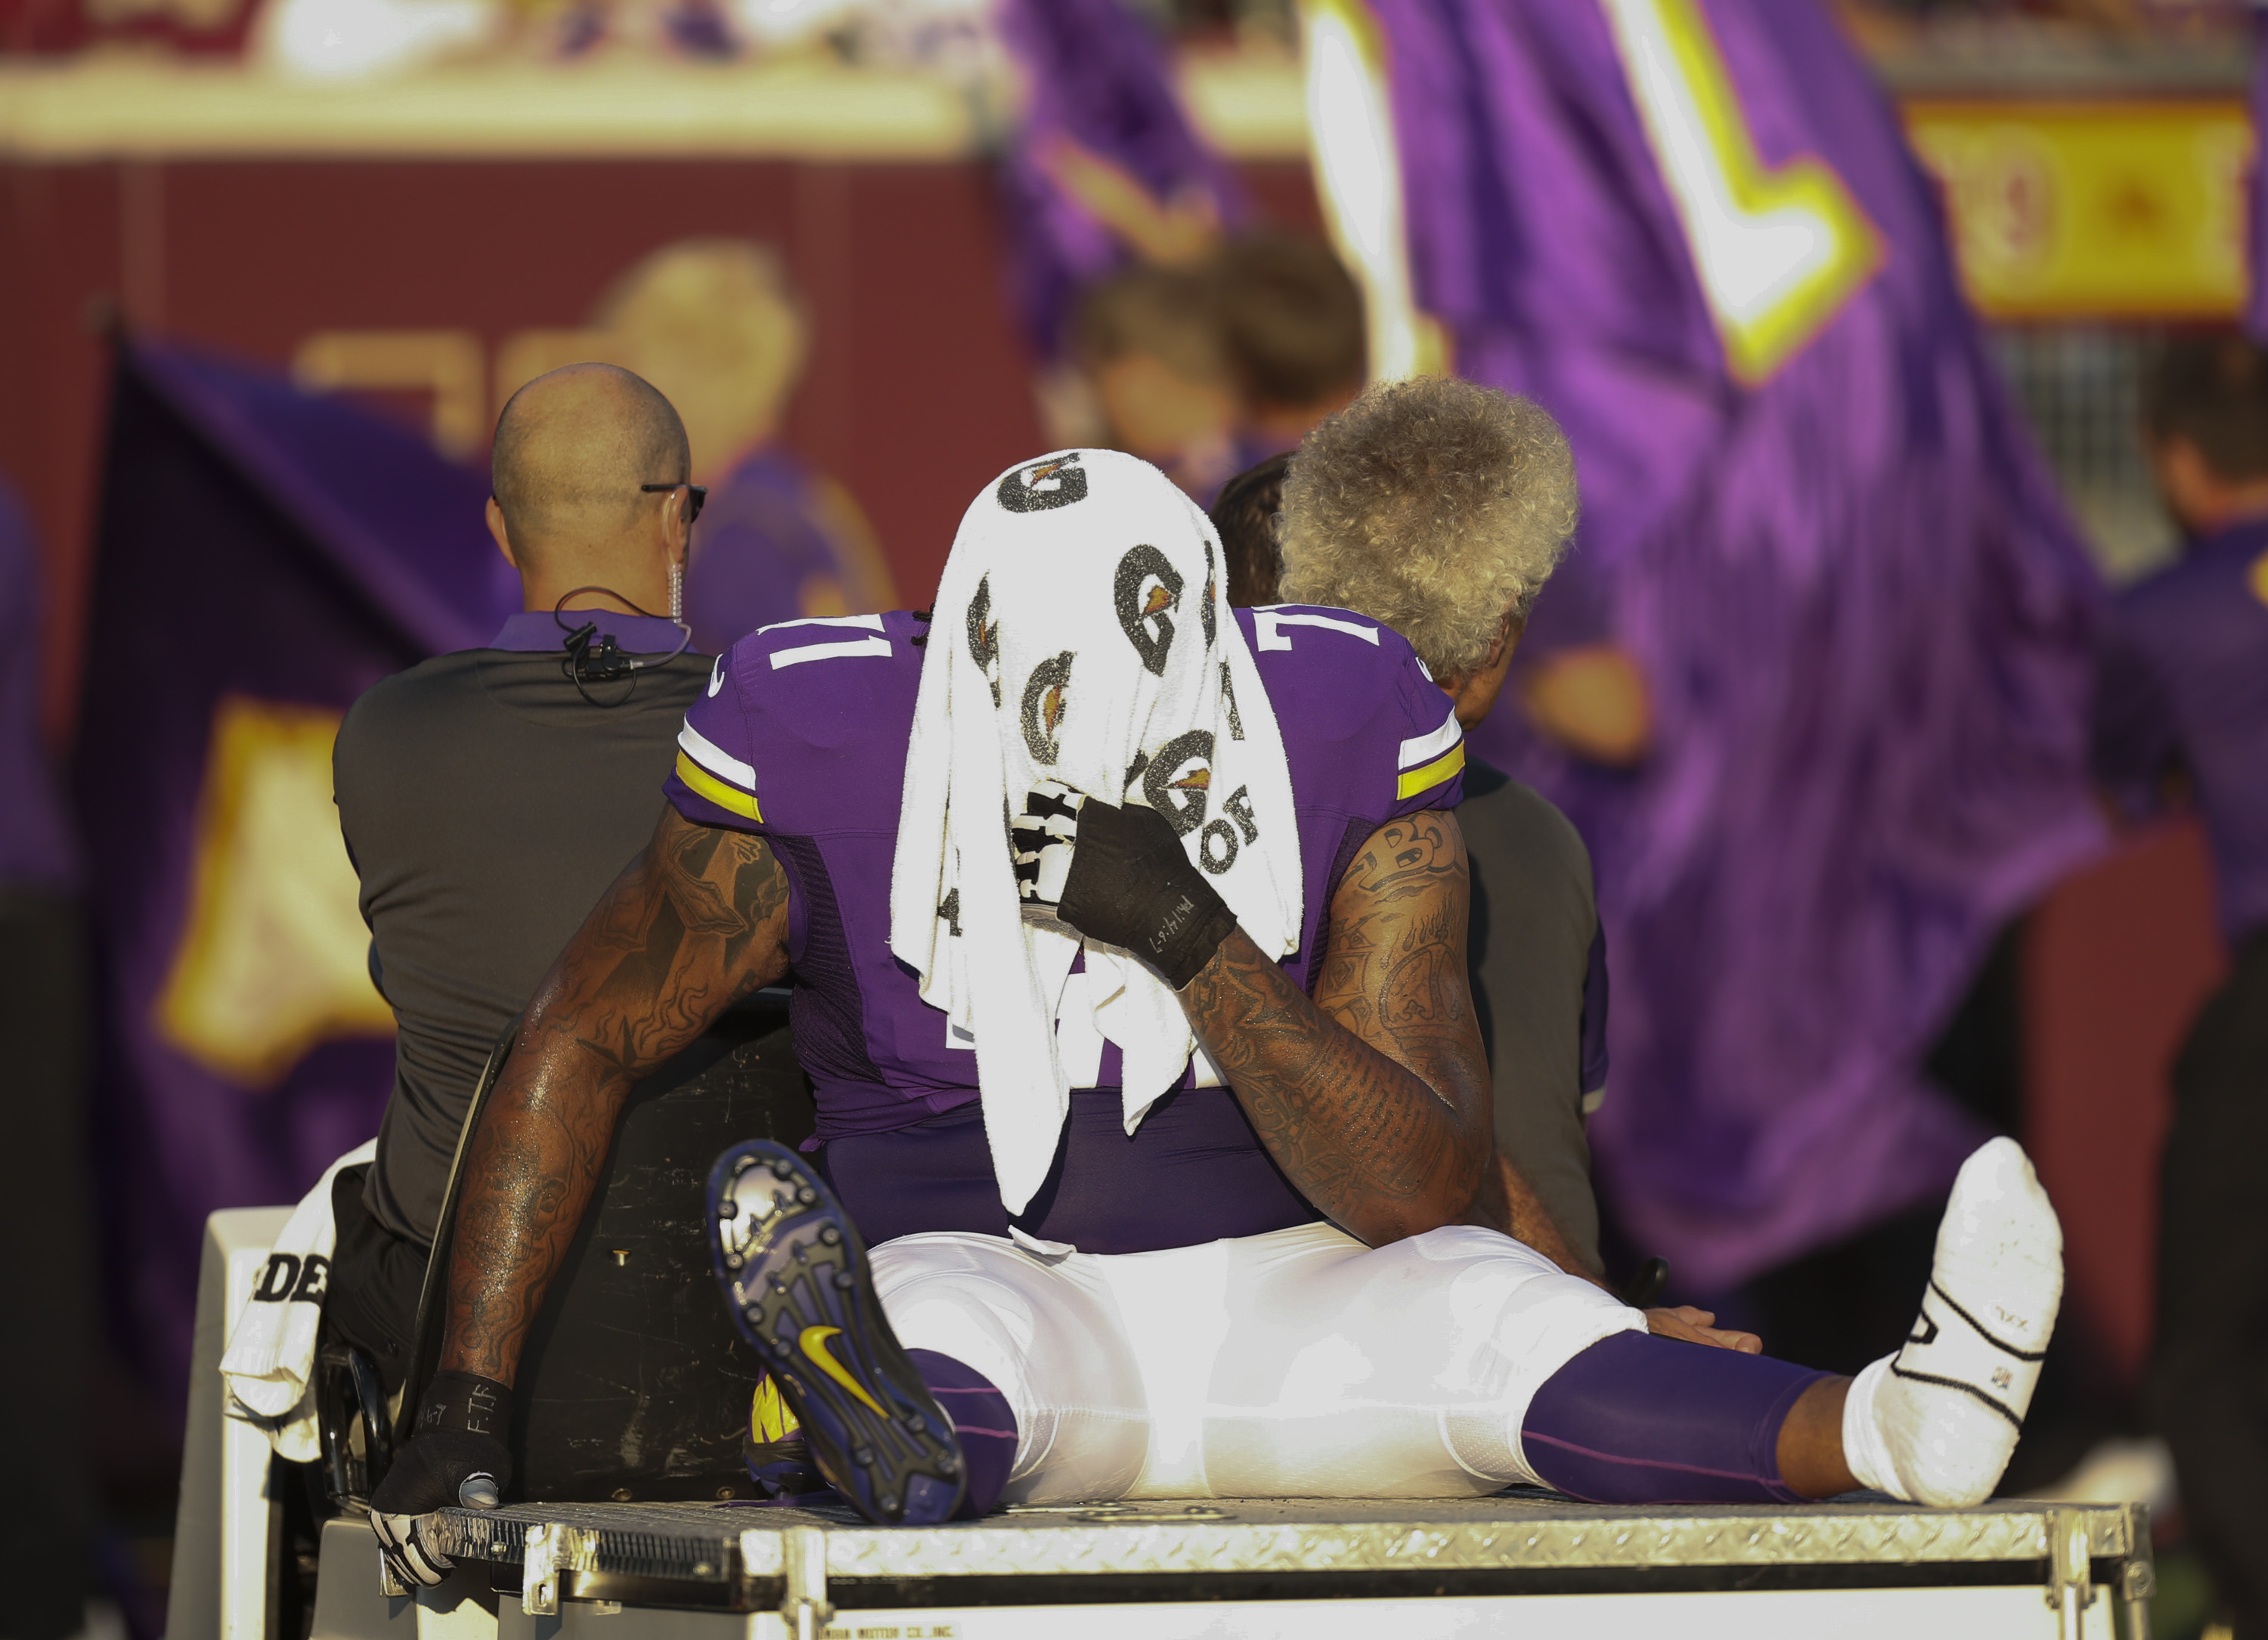 FILE - In this Aug. 15, 2015, file photo, Minnesota Vikings right tackle Phil Loadholt is carted off the field during the first quarter of the Vikings' NFL preseason football game against the Tampa Bay Buccaneers in Minneapolis. With Loadholt likely lost